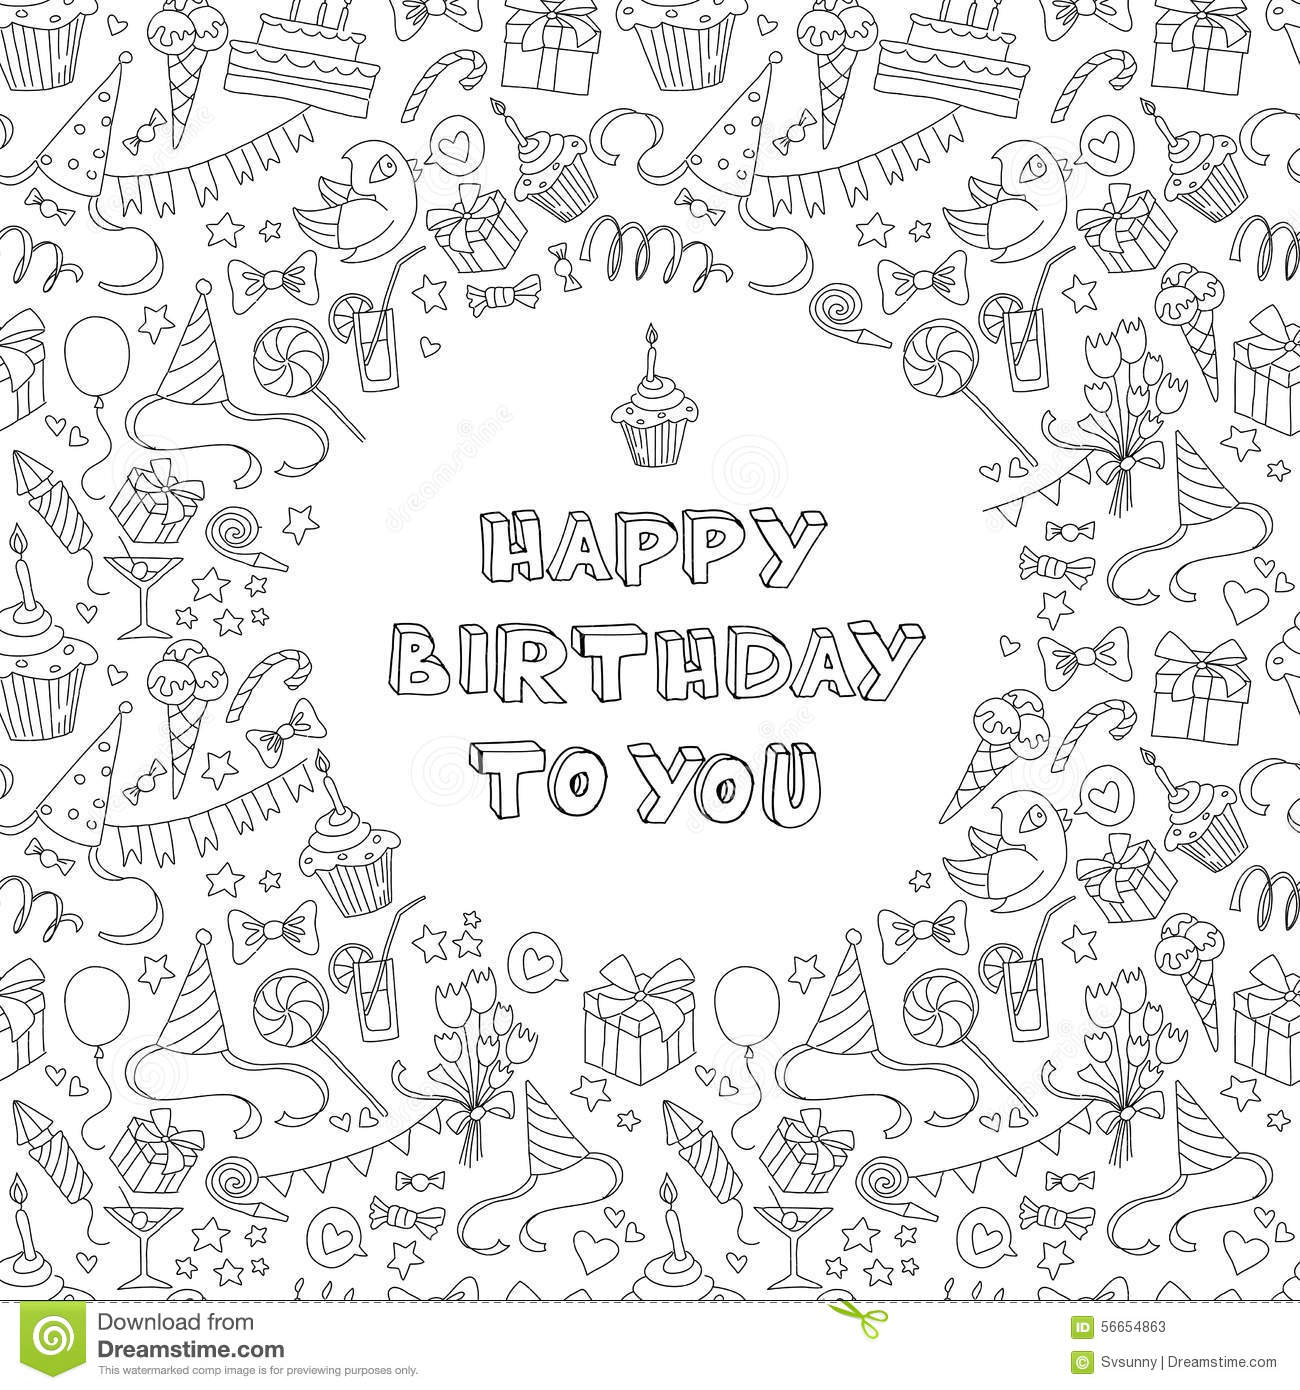 Happy birthday greeting card with hand drawm pattern and letter happy birthday greeting card with hand drawm pattern and letter kristyandbryce Image collections